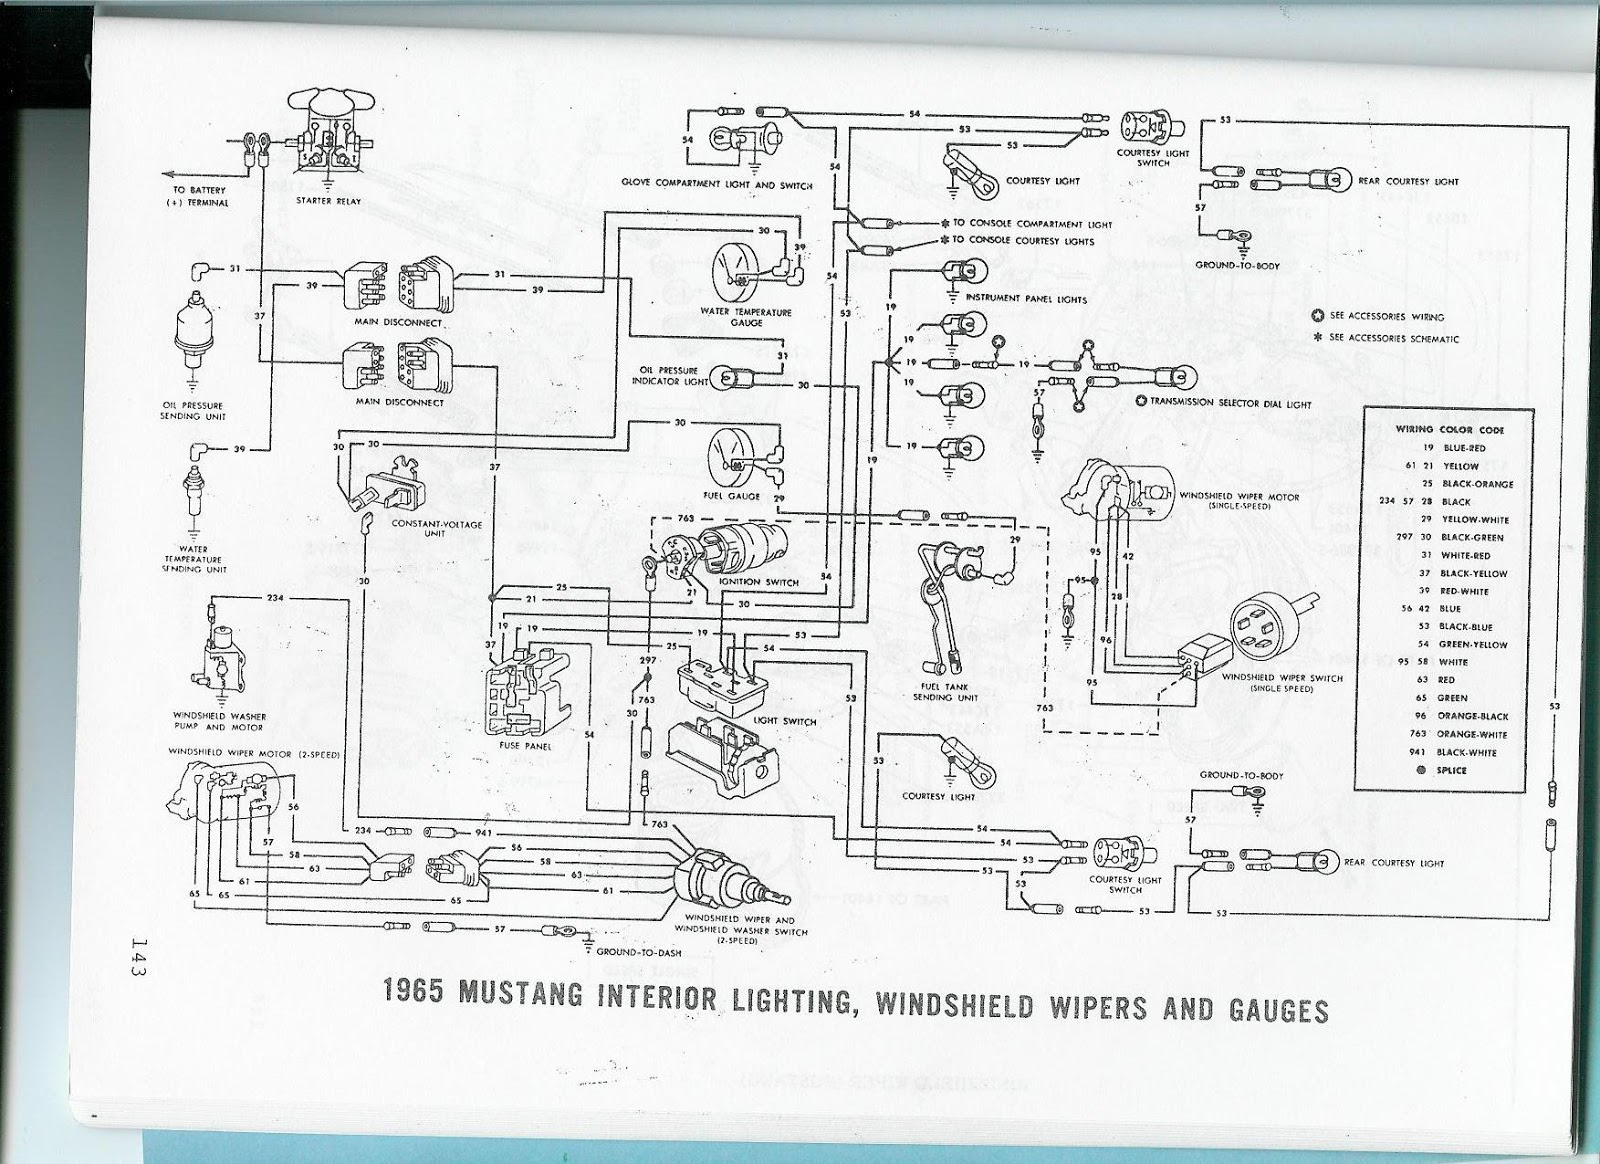 66 mustang heater wiring diagram schematic wiring library  66 mustang wiring diagram schematic #8